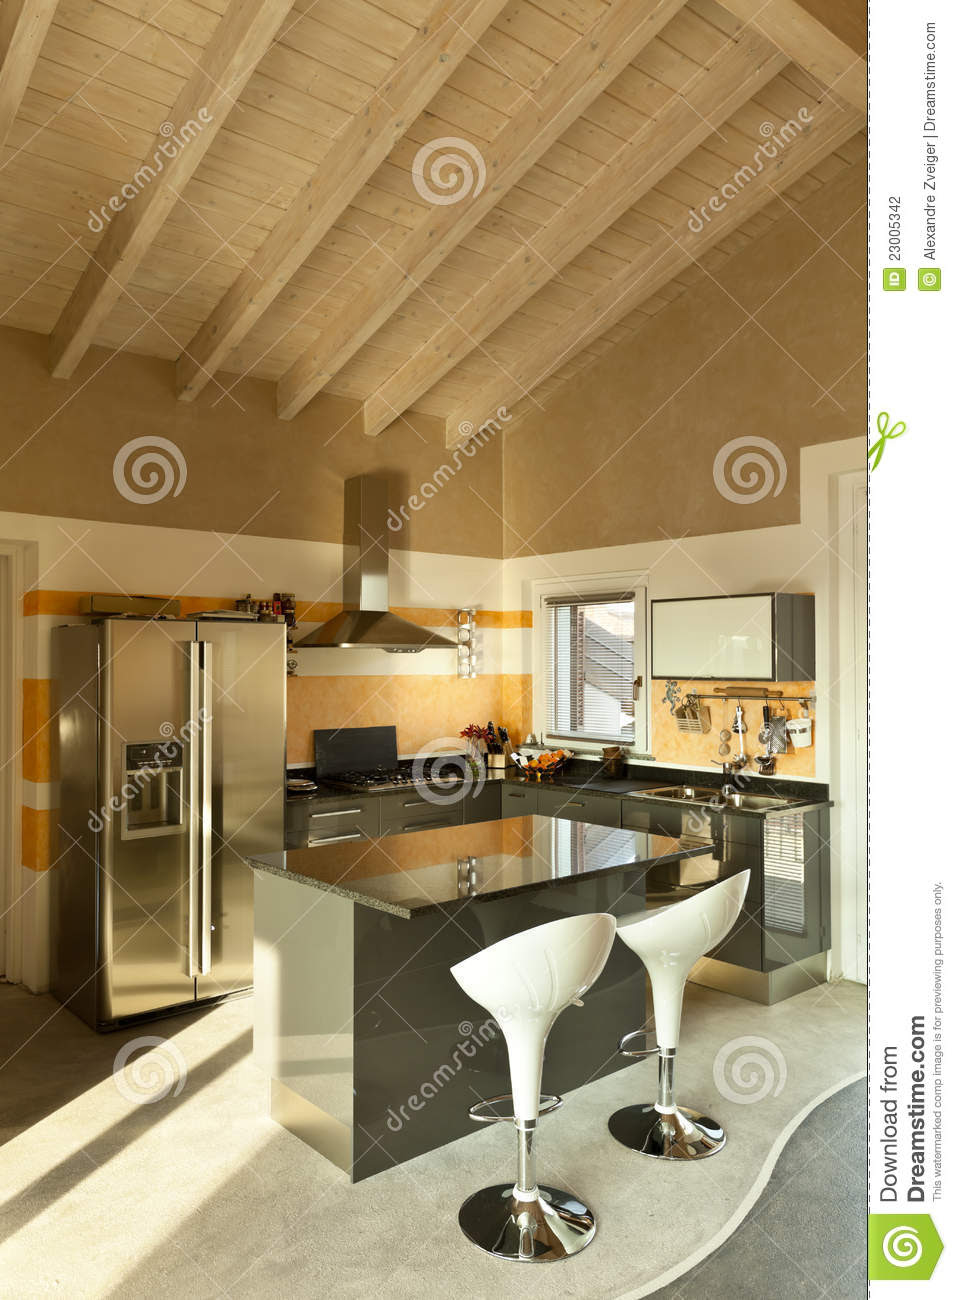 Brilliant Kitchens with Two Islands 957 x 1300 · 141 kB · jpeg